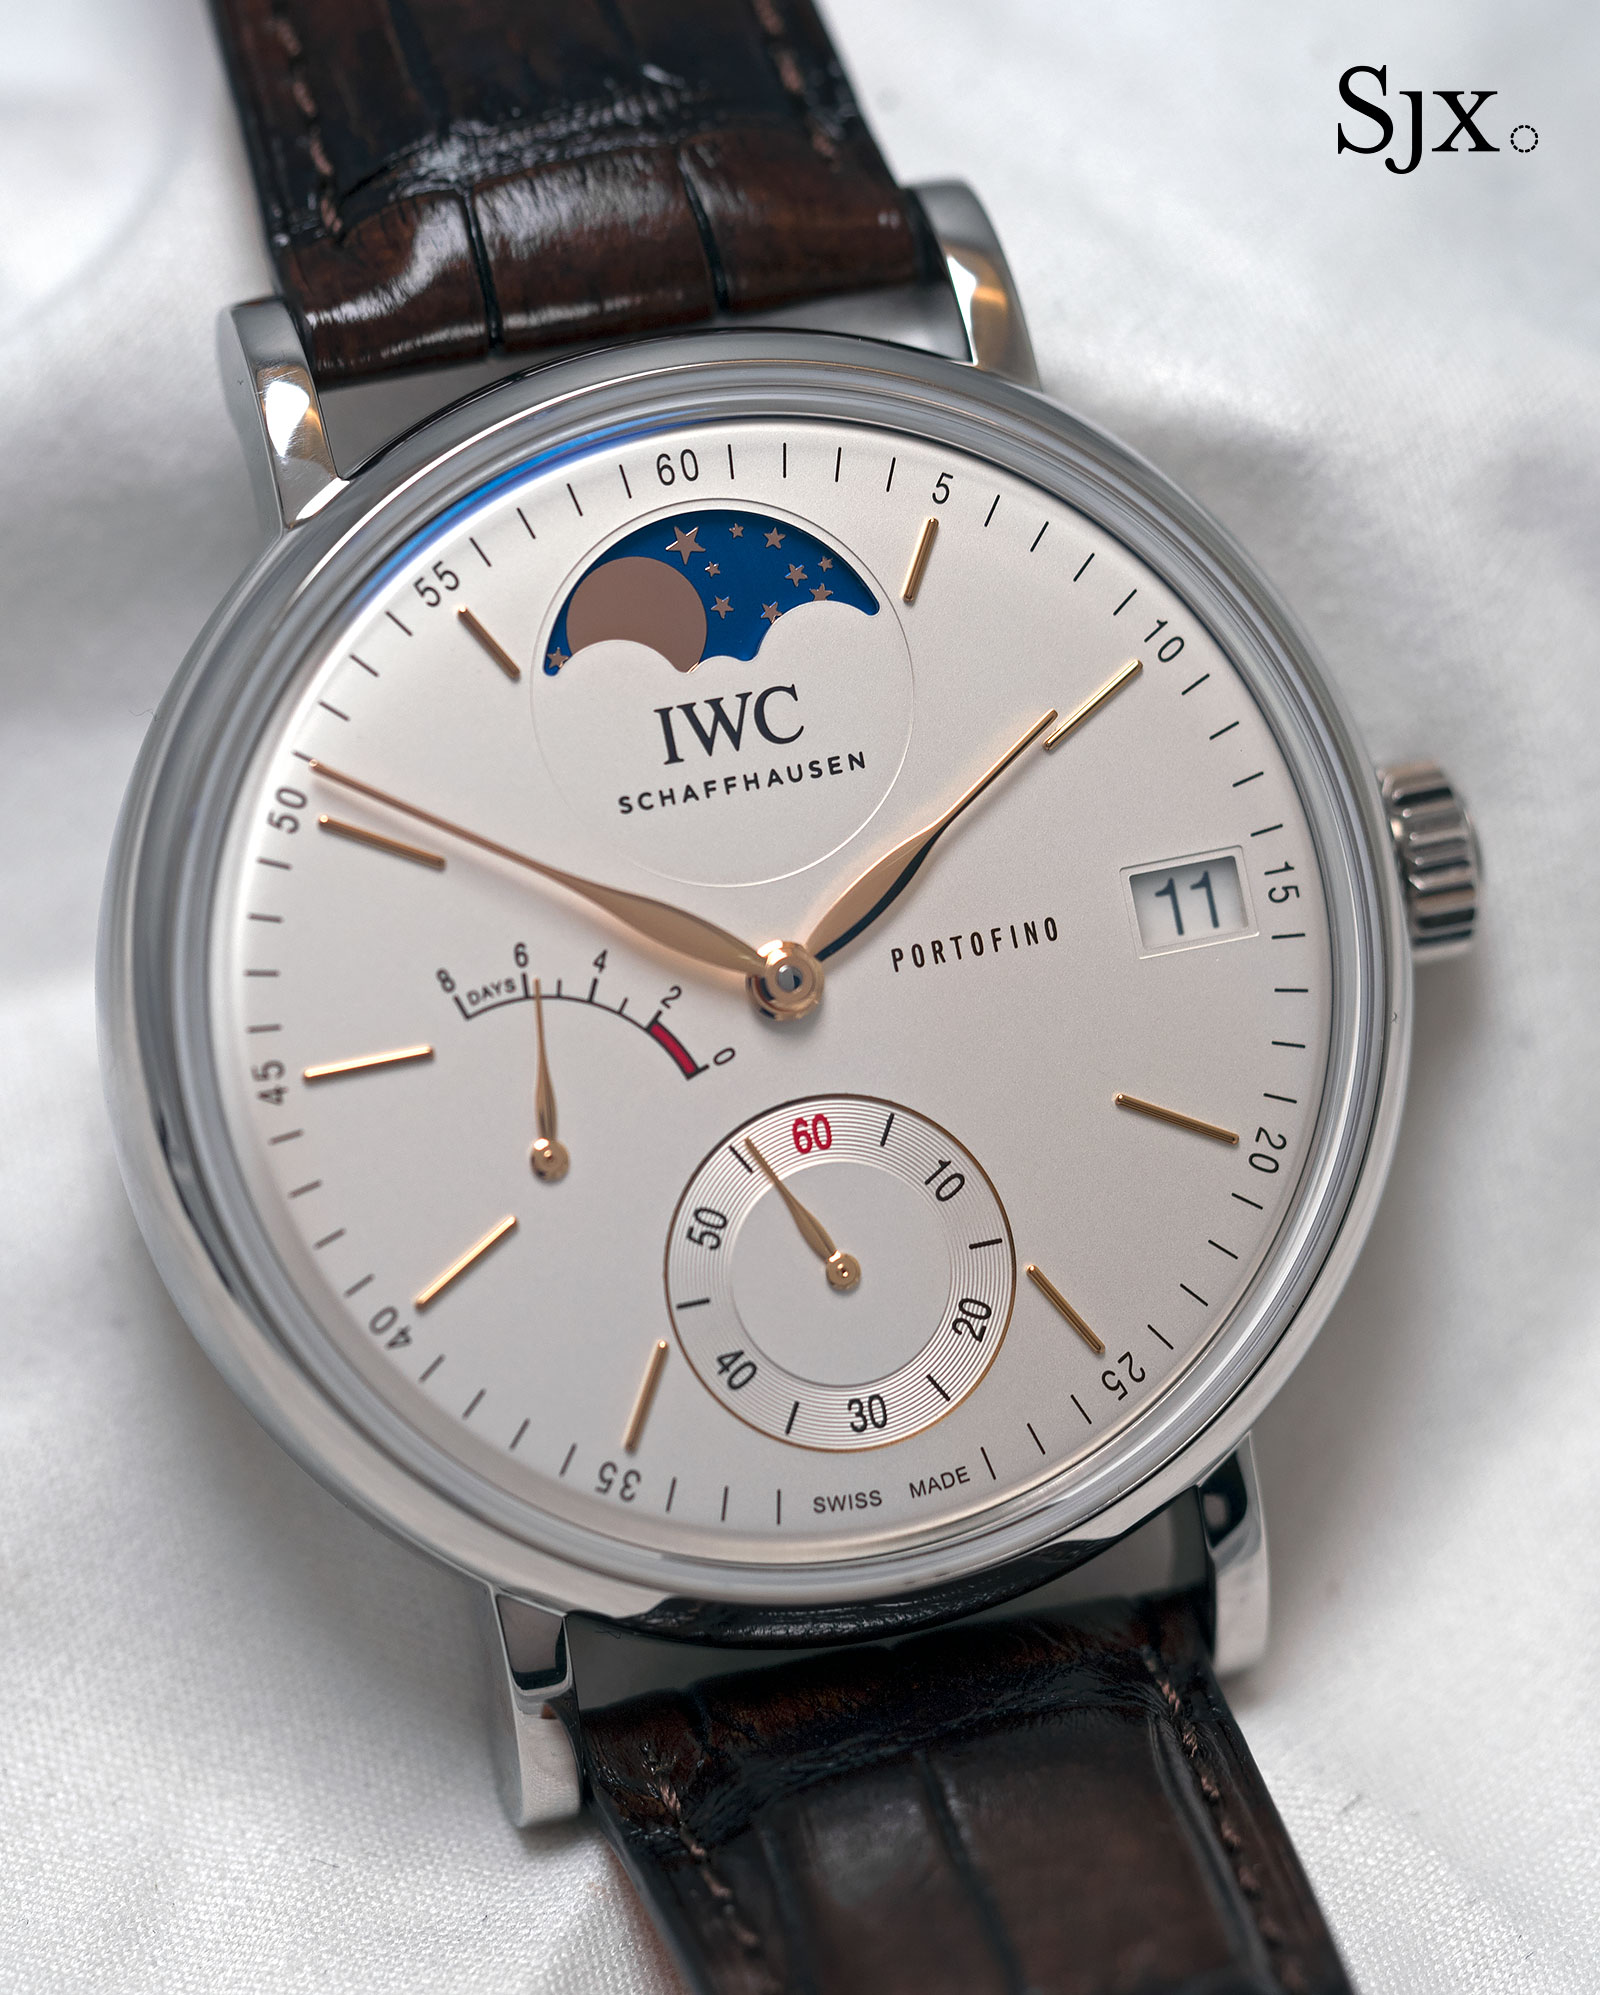 IWC Portofino Hand-Wound Eight Days Moon Phase 1